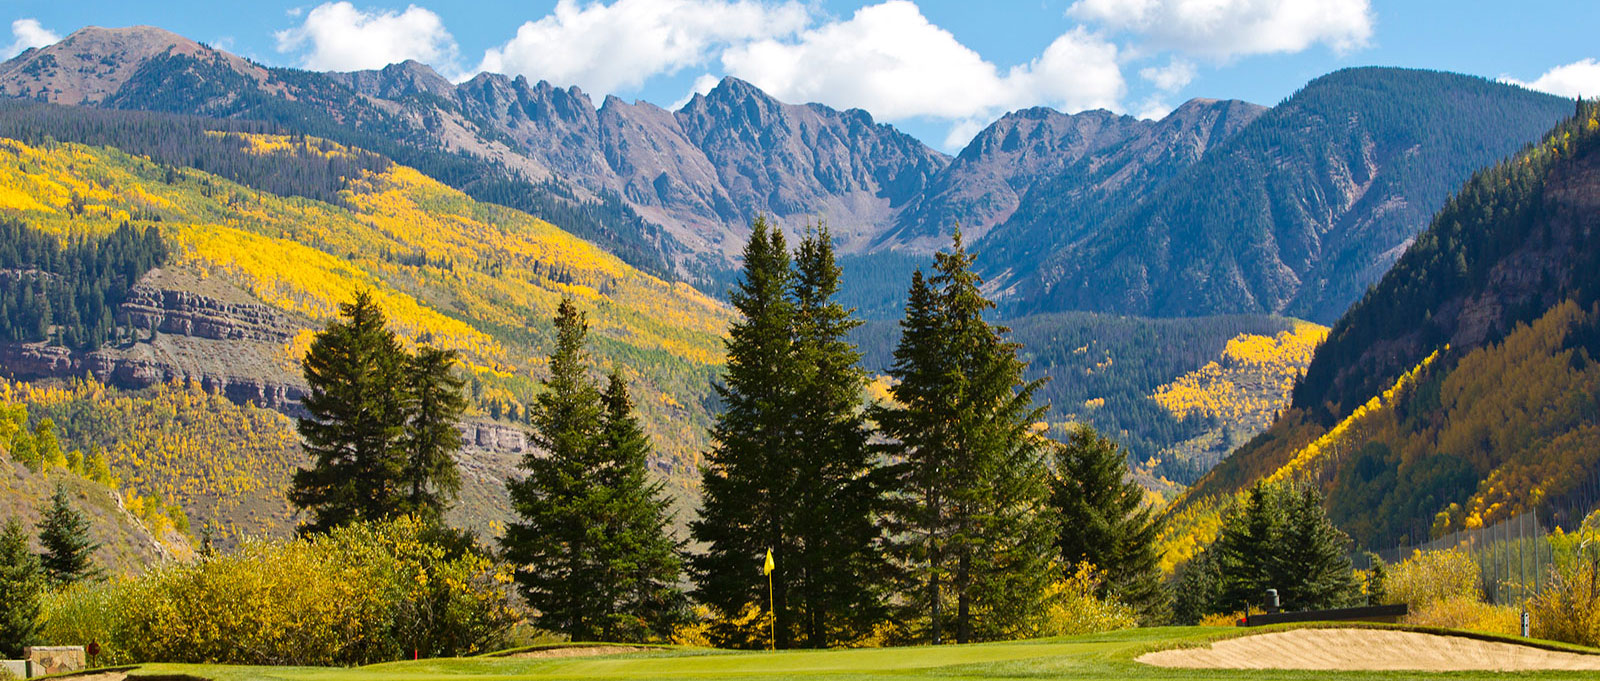 Fall in the Rocky Mountains